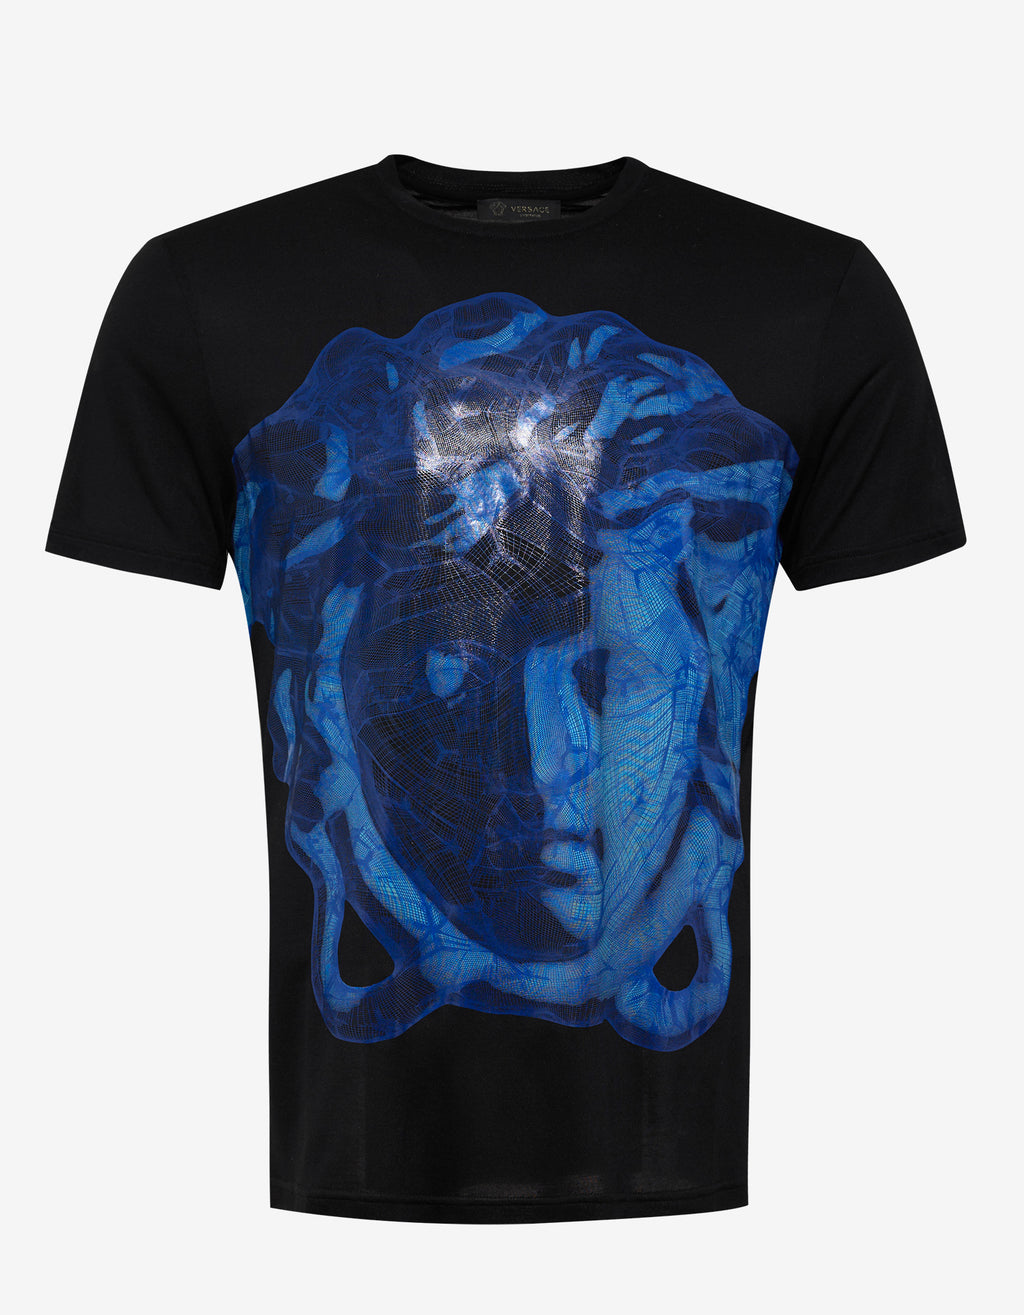 Black Medusa Graphic Print T-Shirt